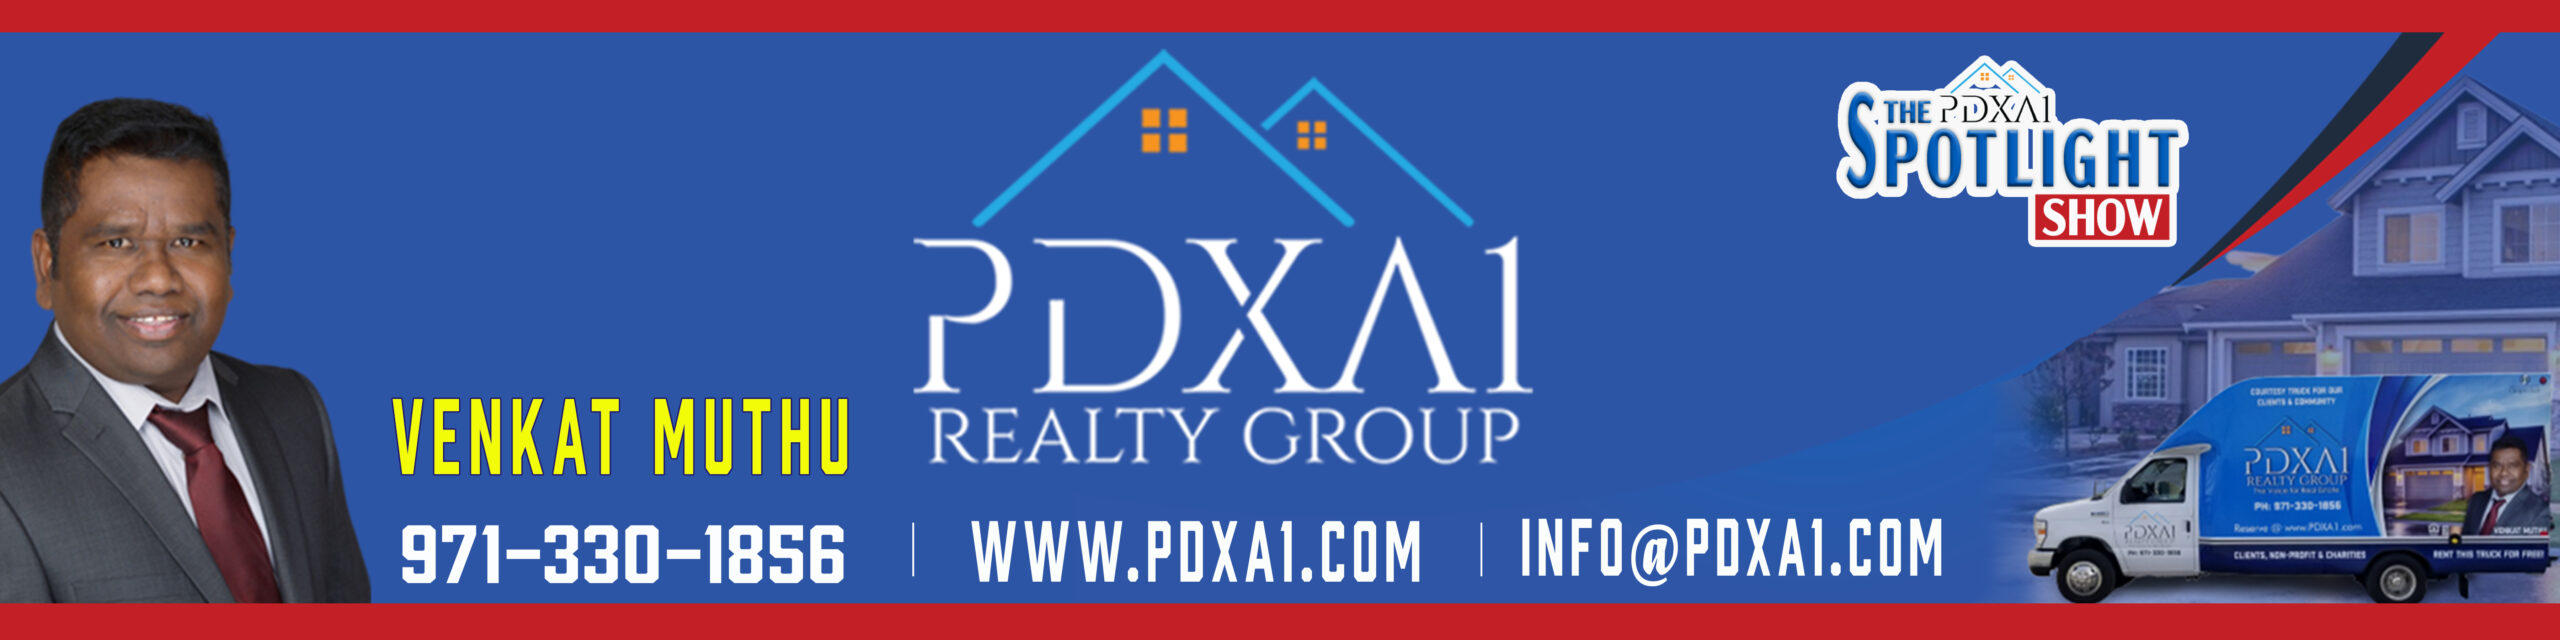 Gold Sponsor - PDXA1 Realty Group